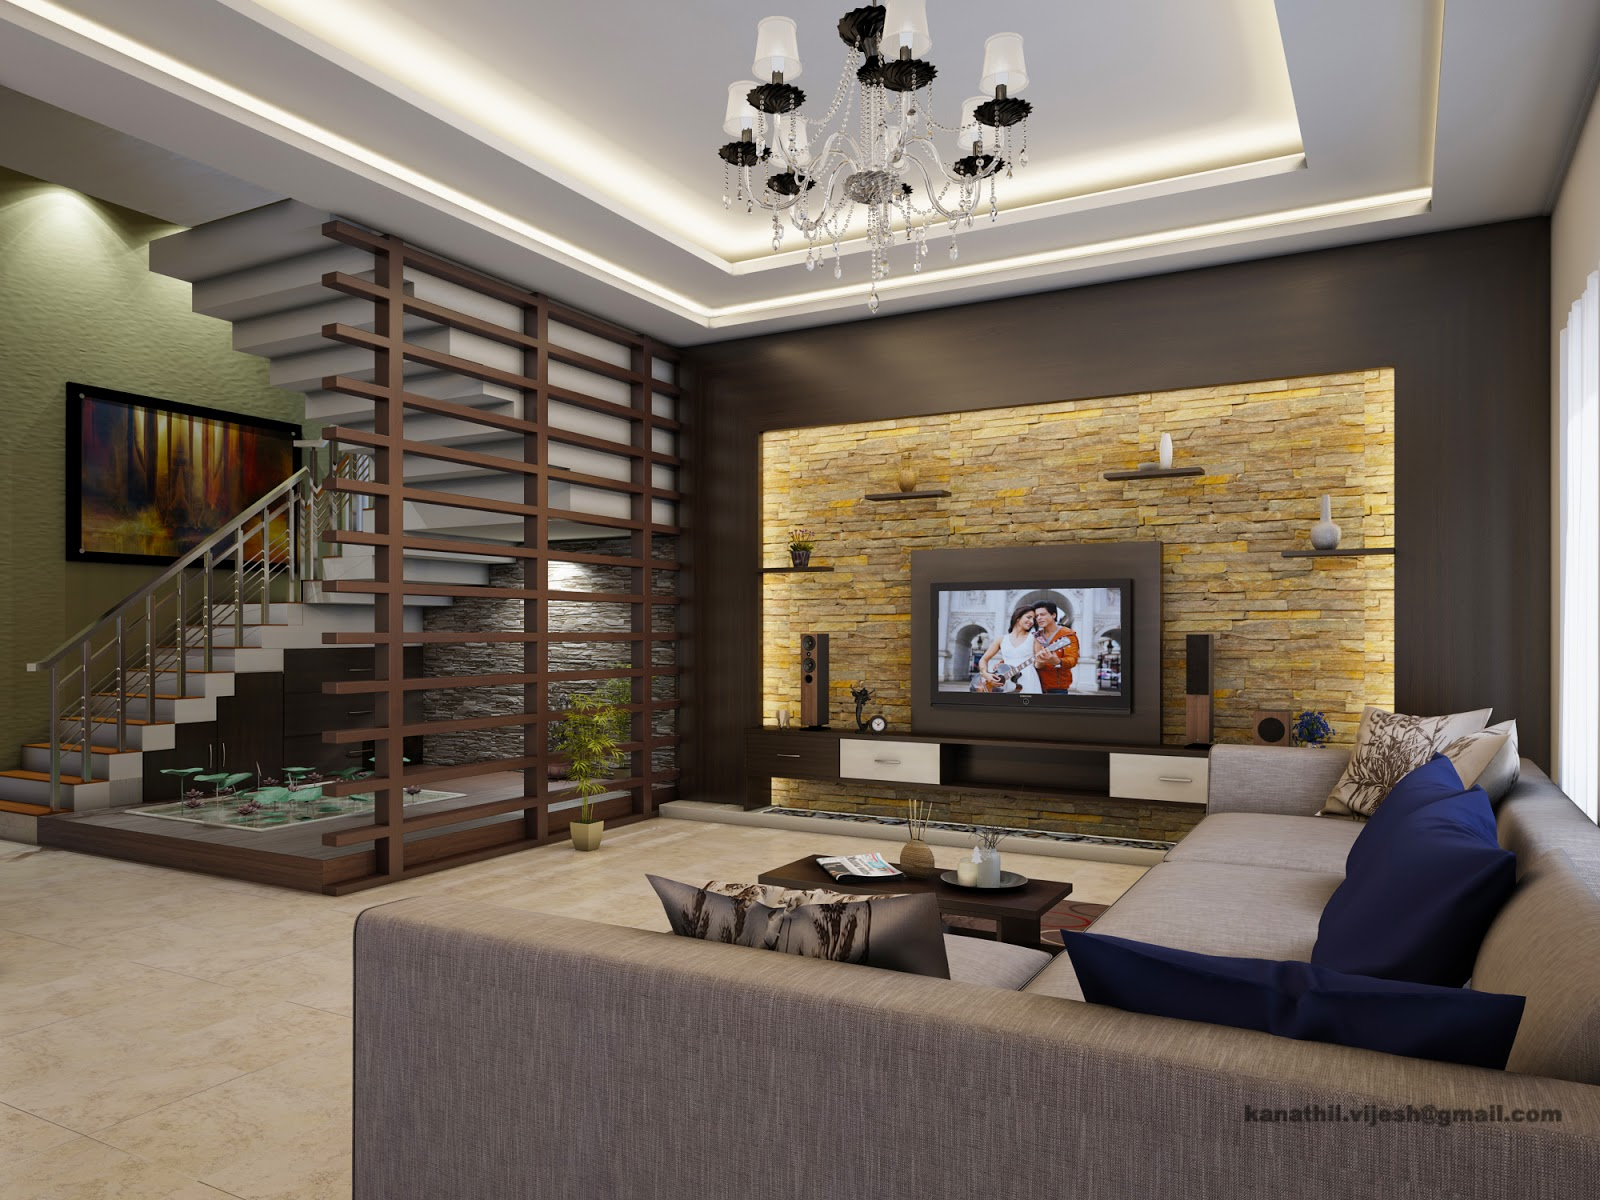 Awesome Living Room Interior Design